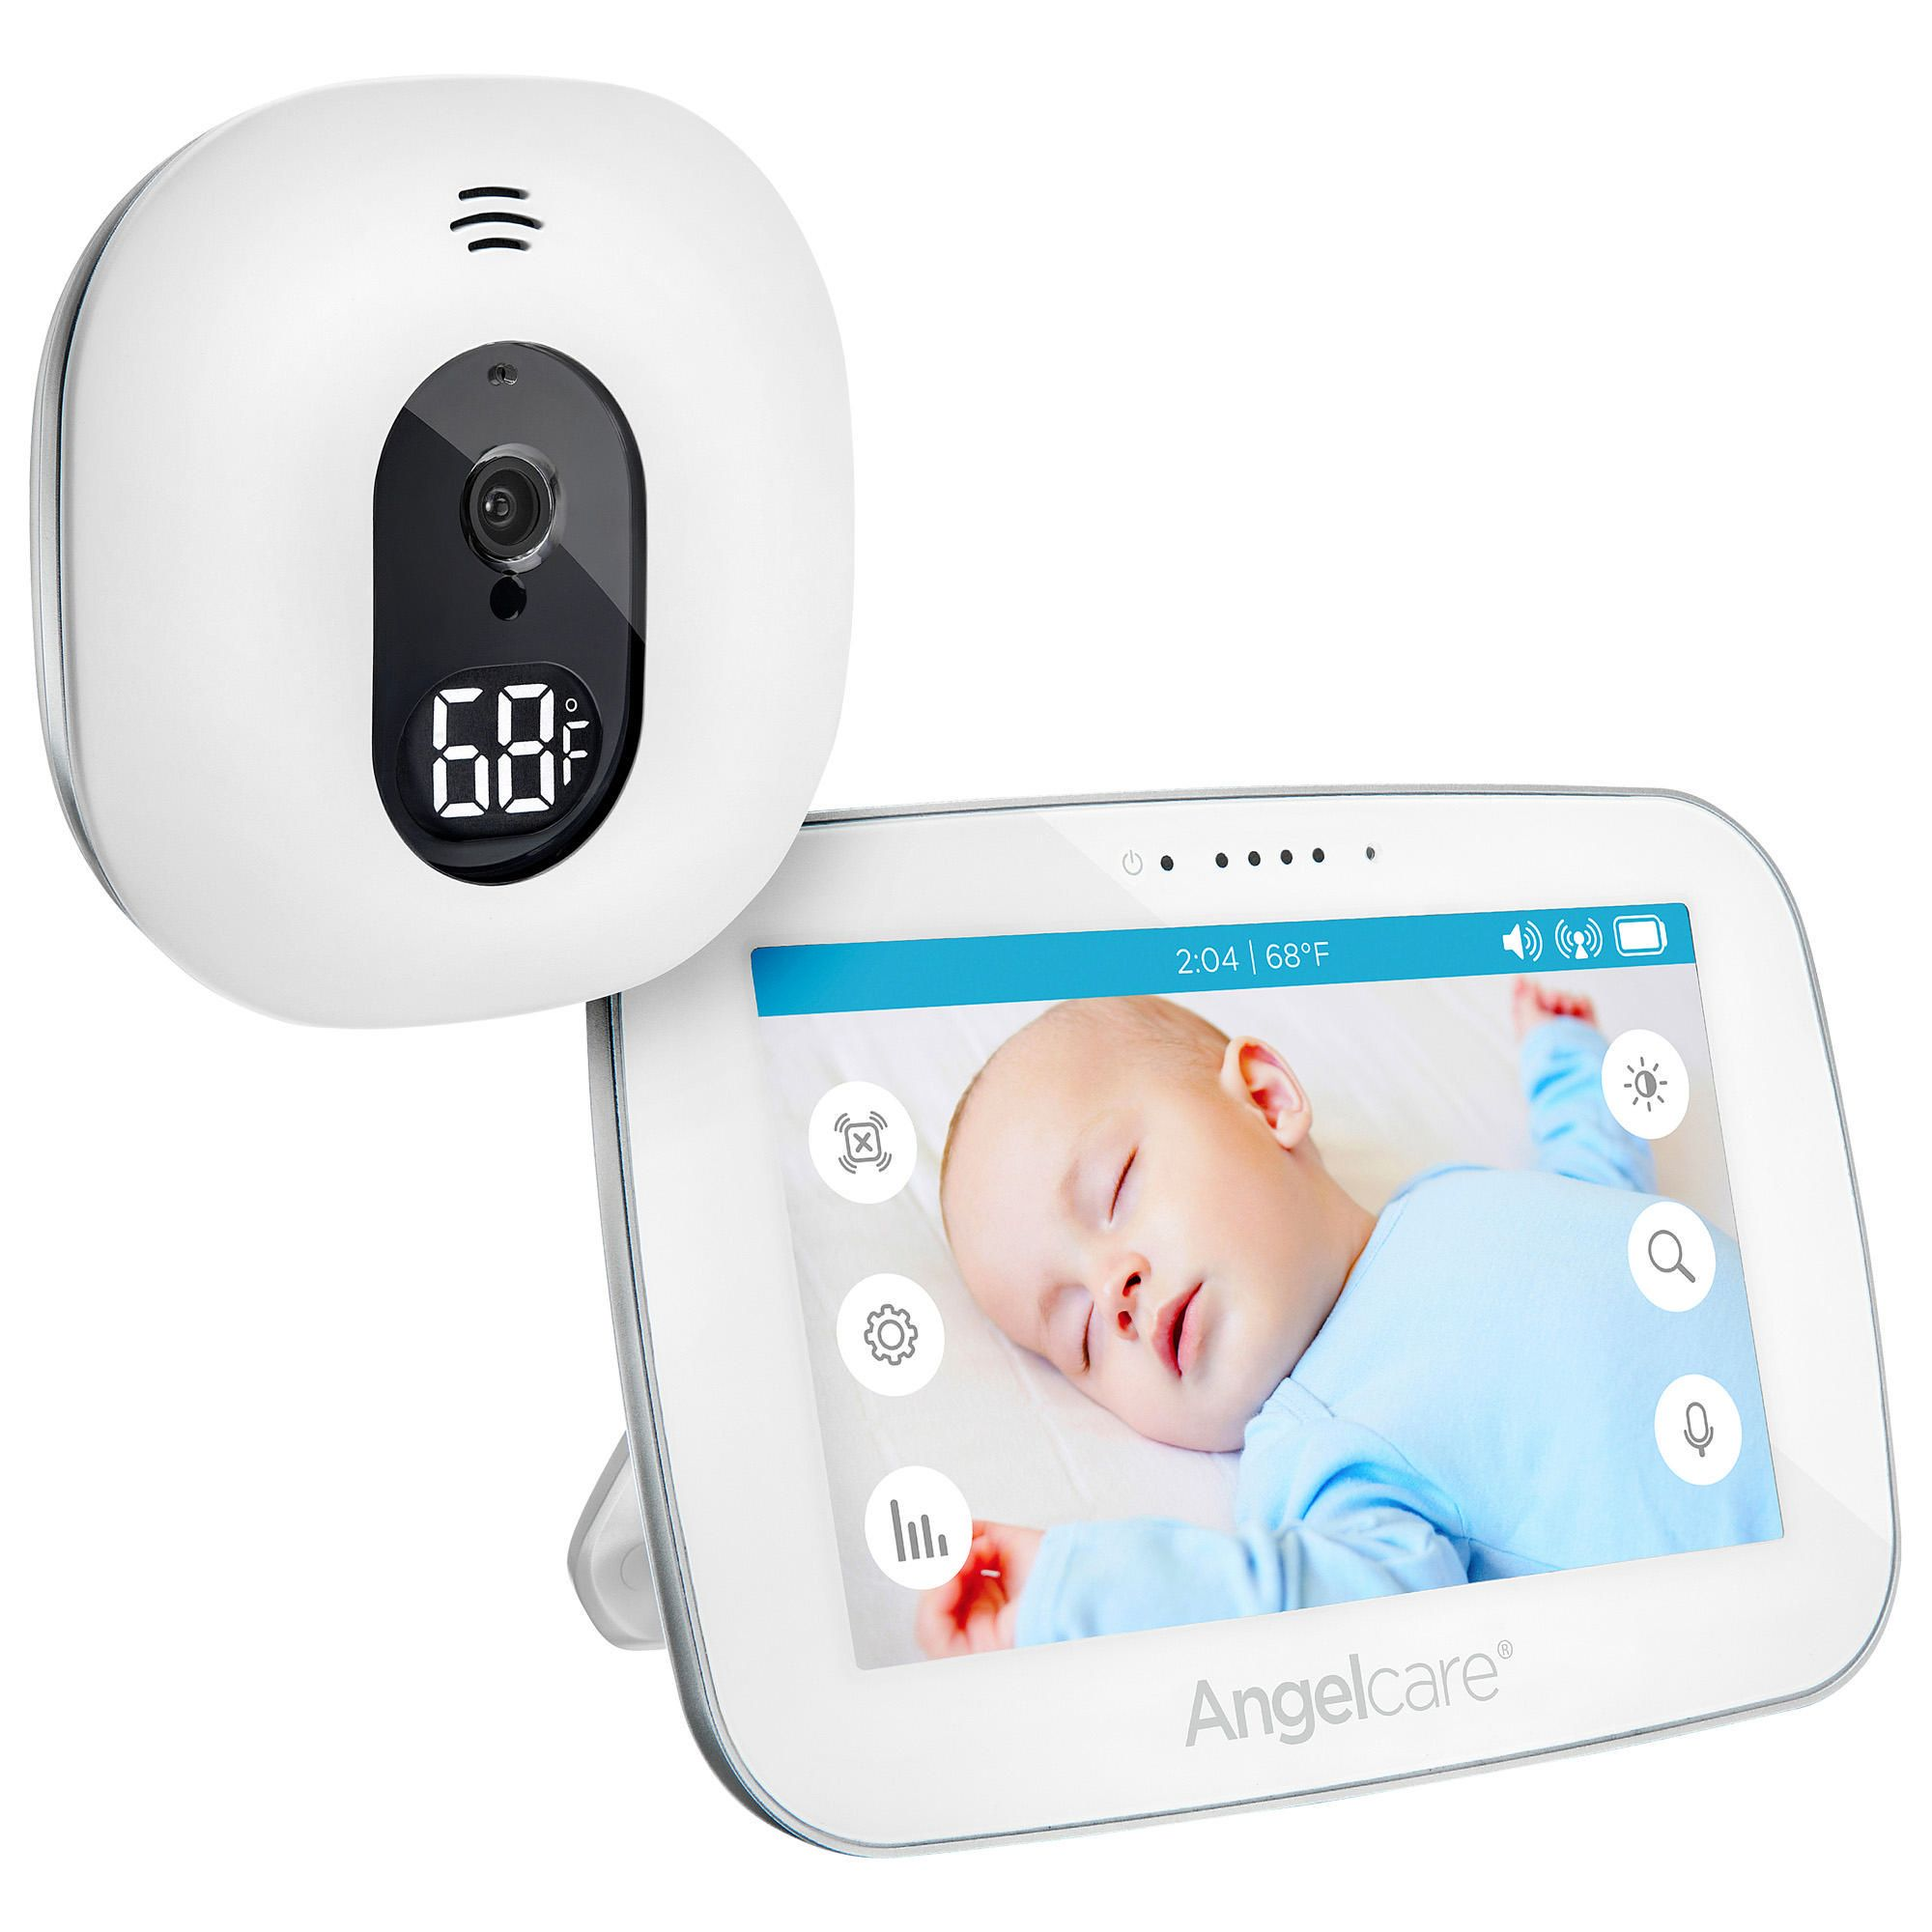 Pin about Sound monitor and Angelcare baby monitor on Prod